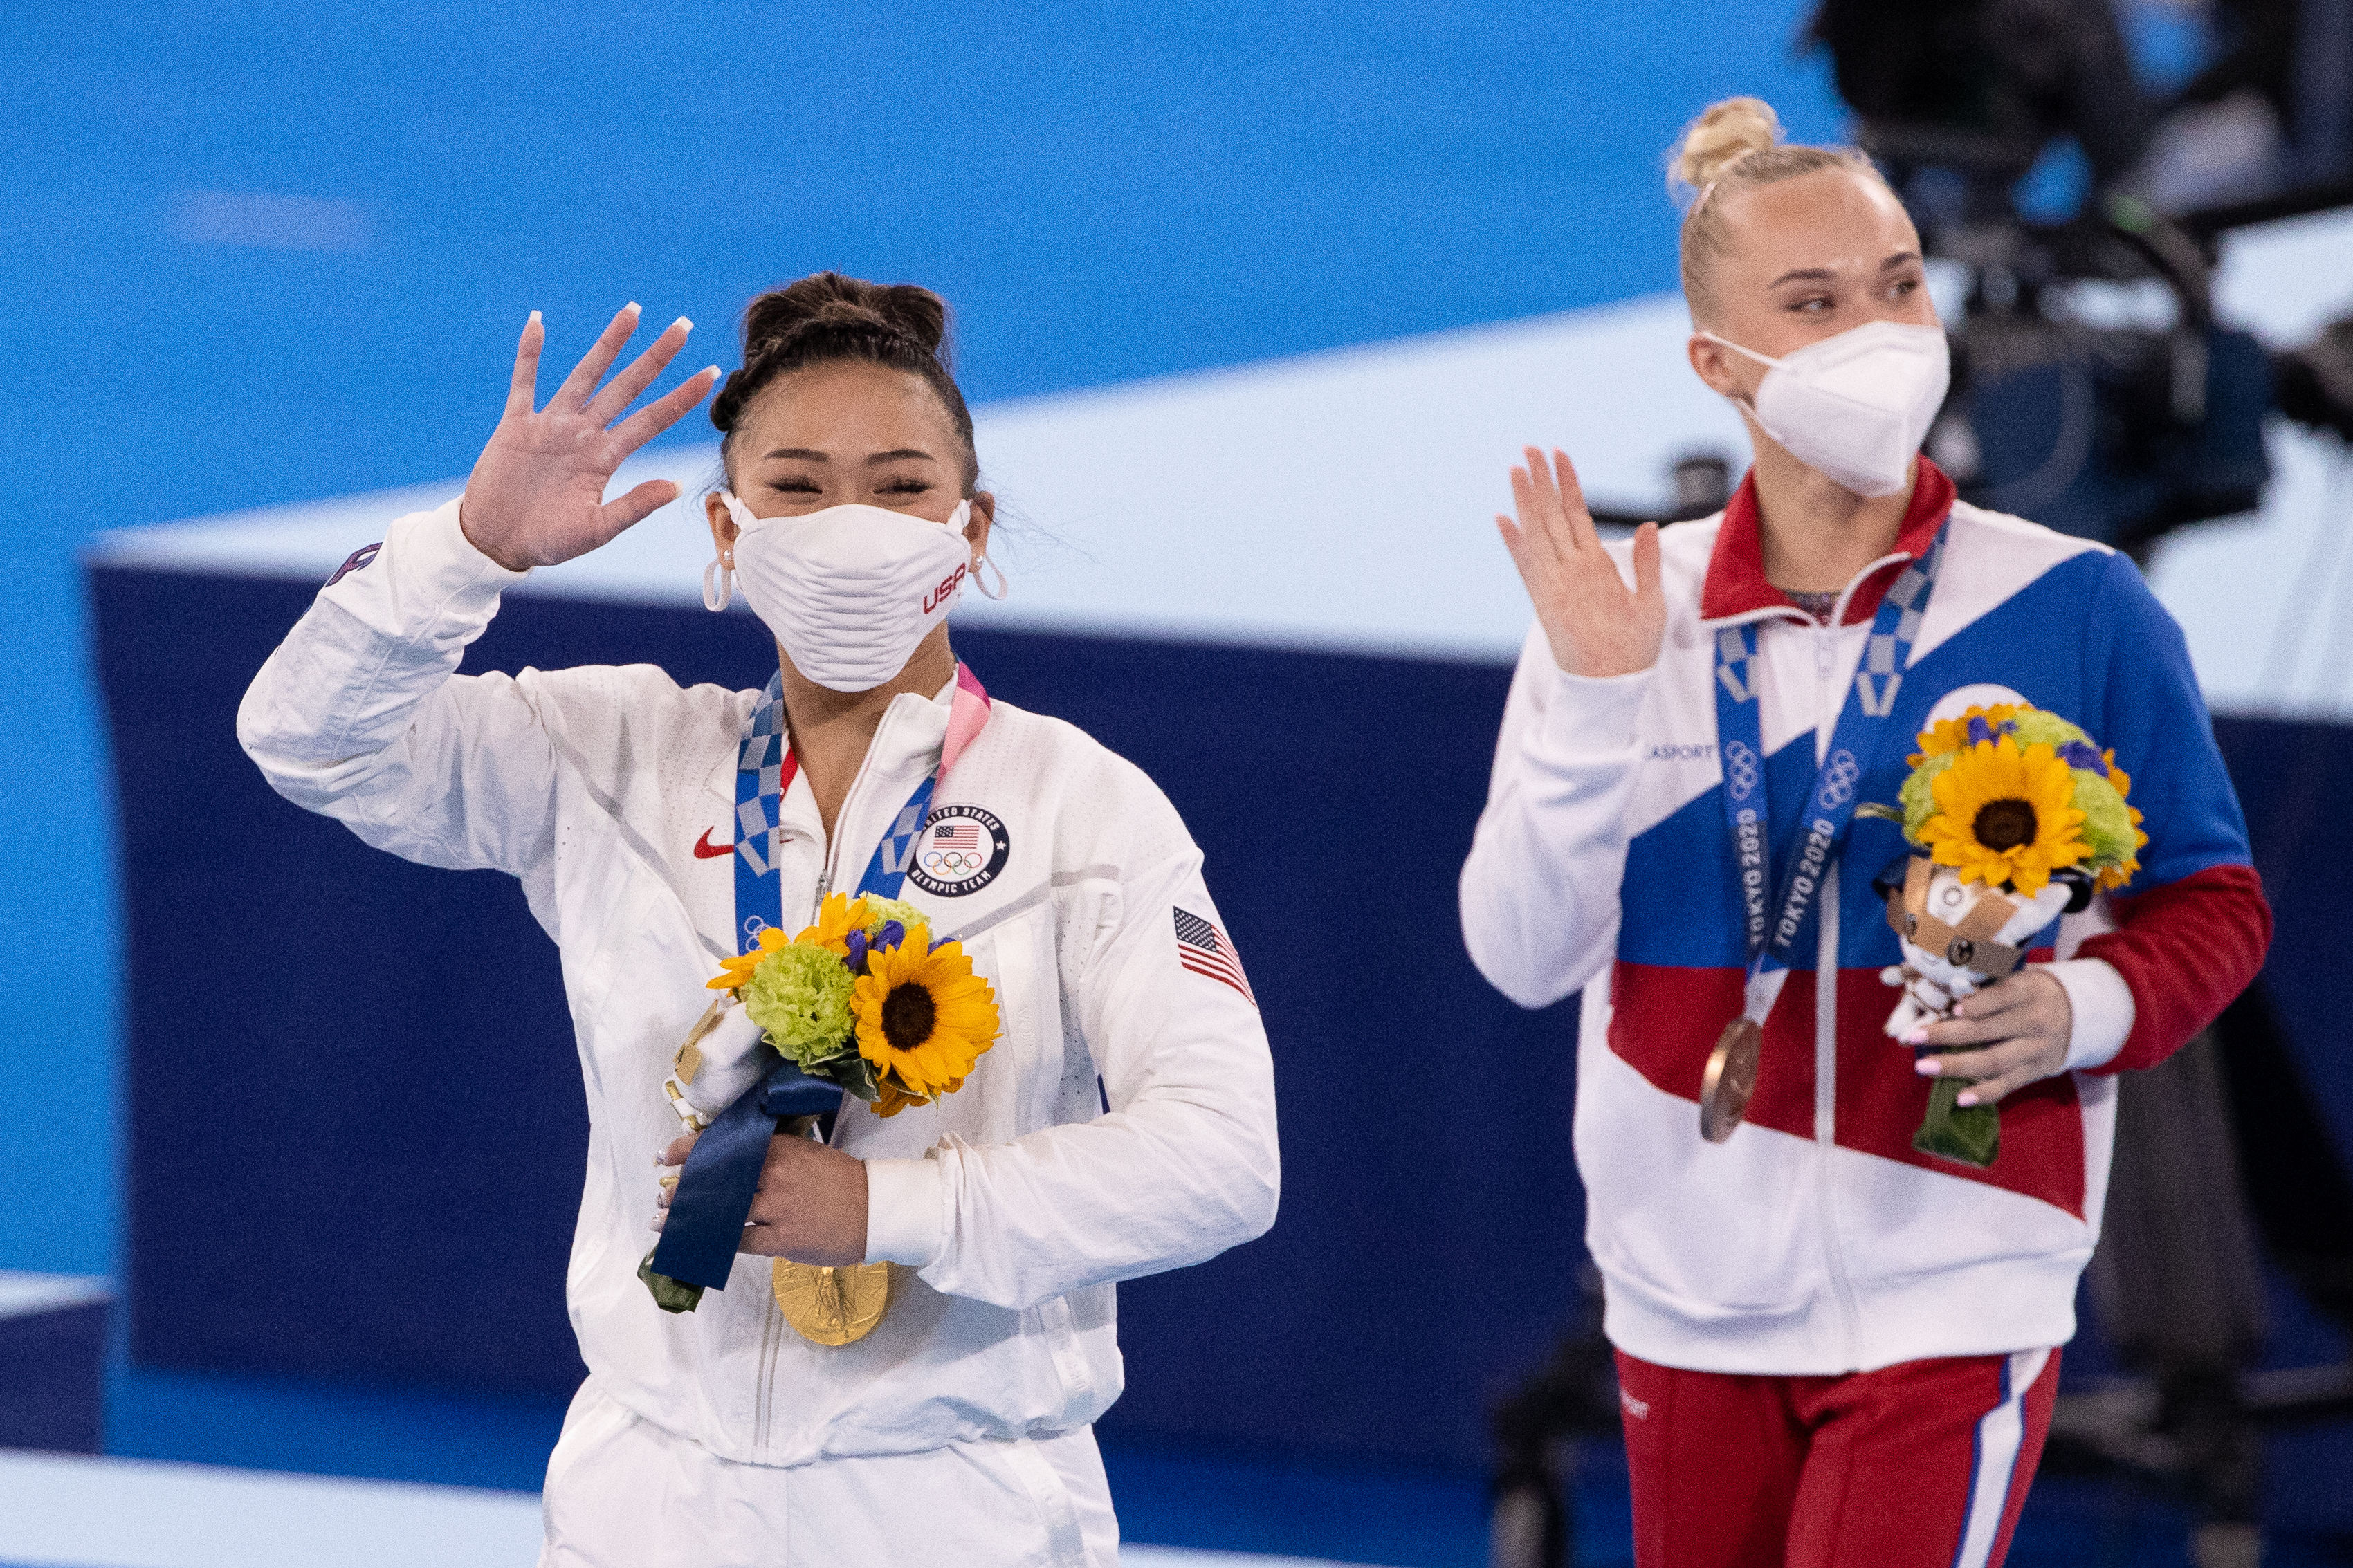 NBC Olympics Viewers Bounce Up Thursday With U.S. Gymnastics & Swimming Wins, Ratings Top Previous Weekdays